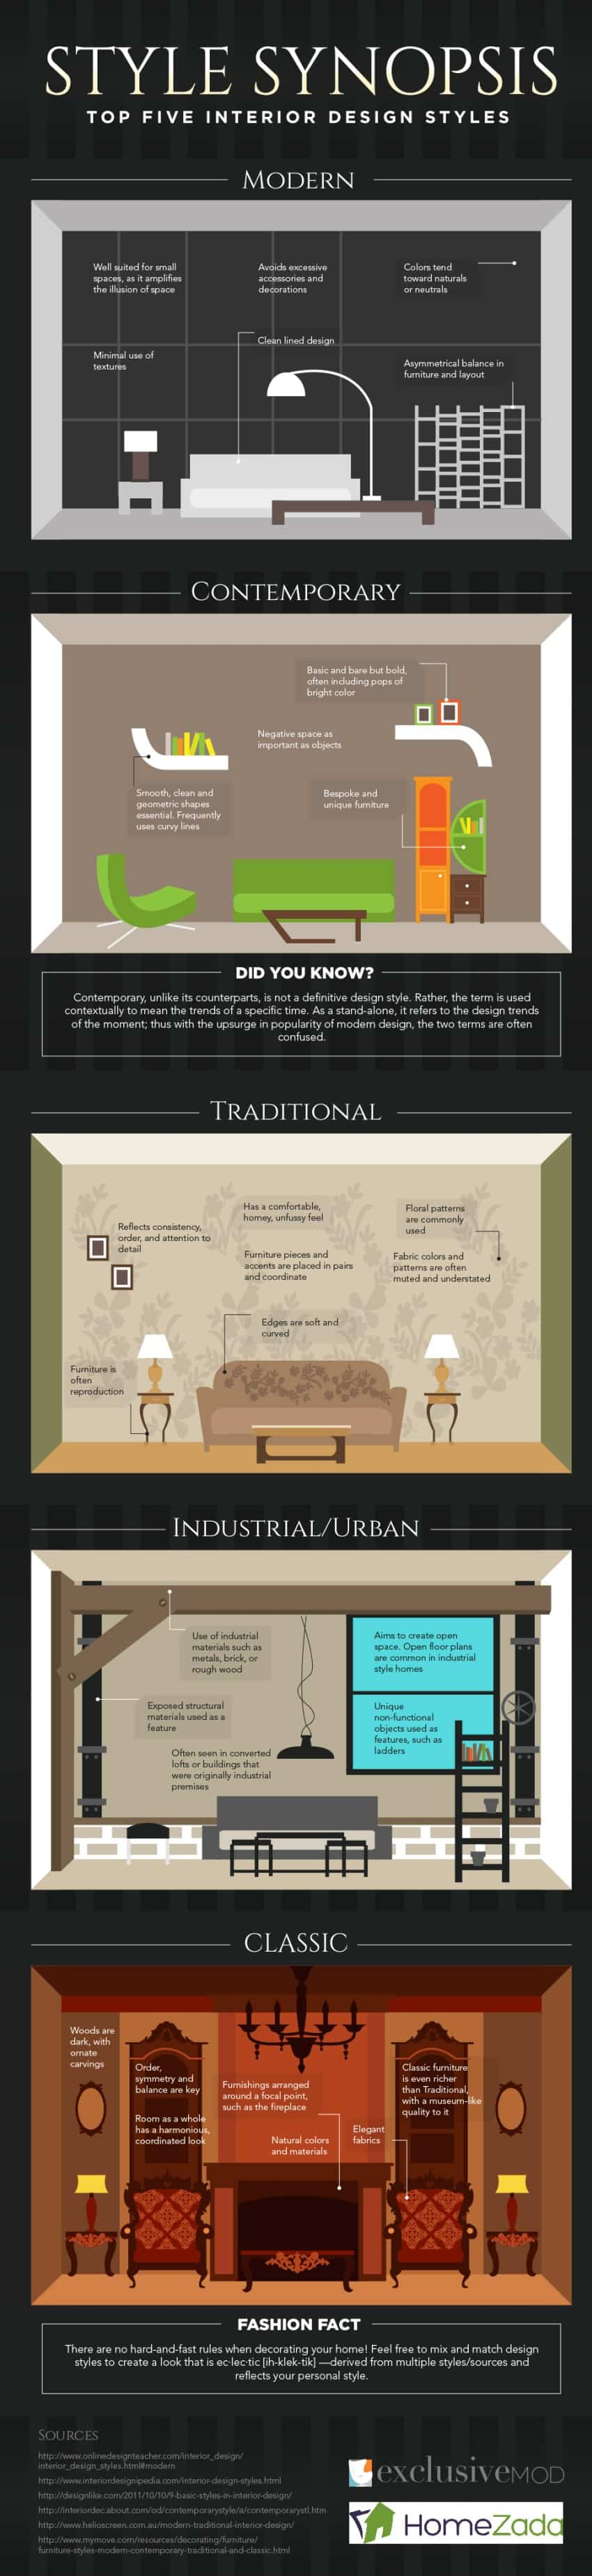 4-interior-design-styles